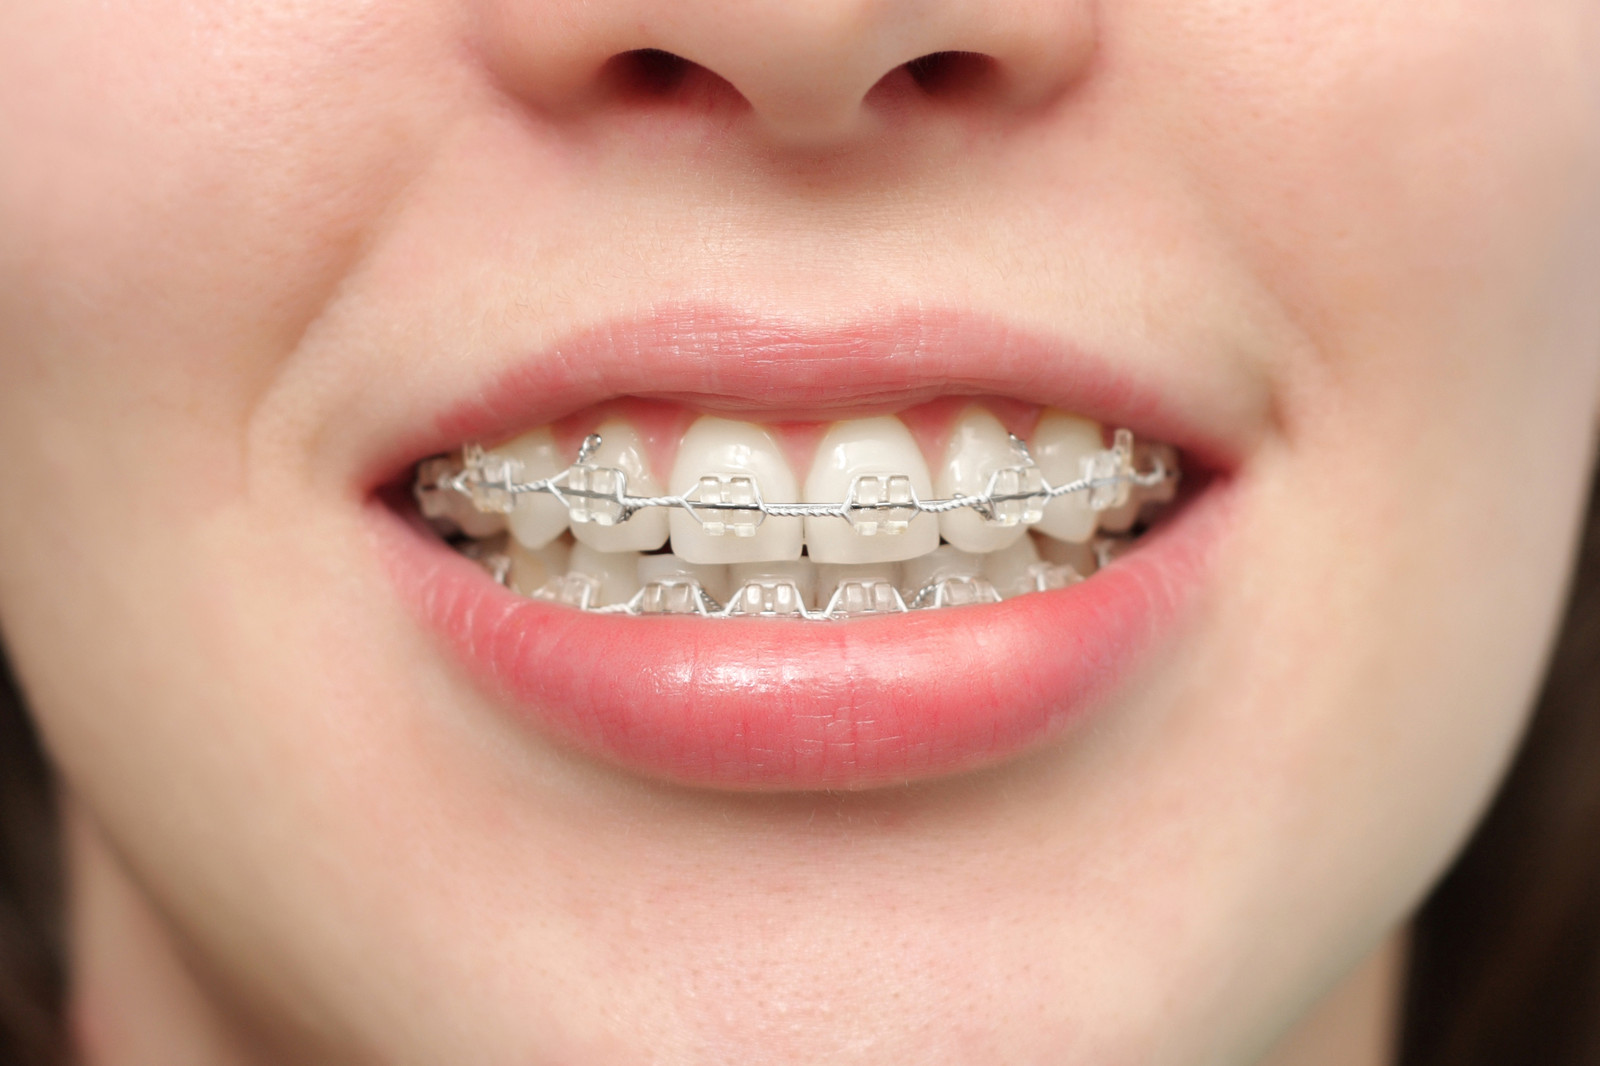 Braces Mouth Protection Protecting Dental Braces